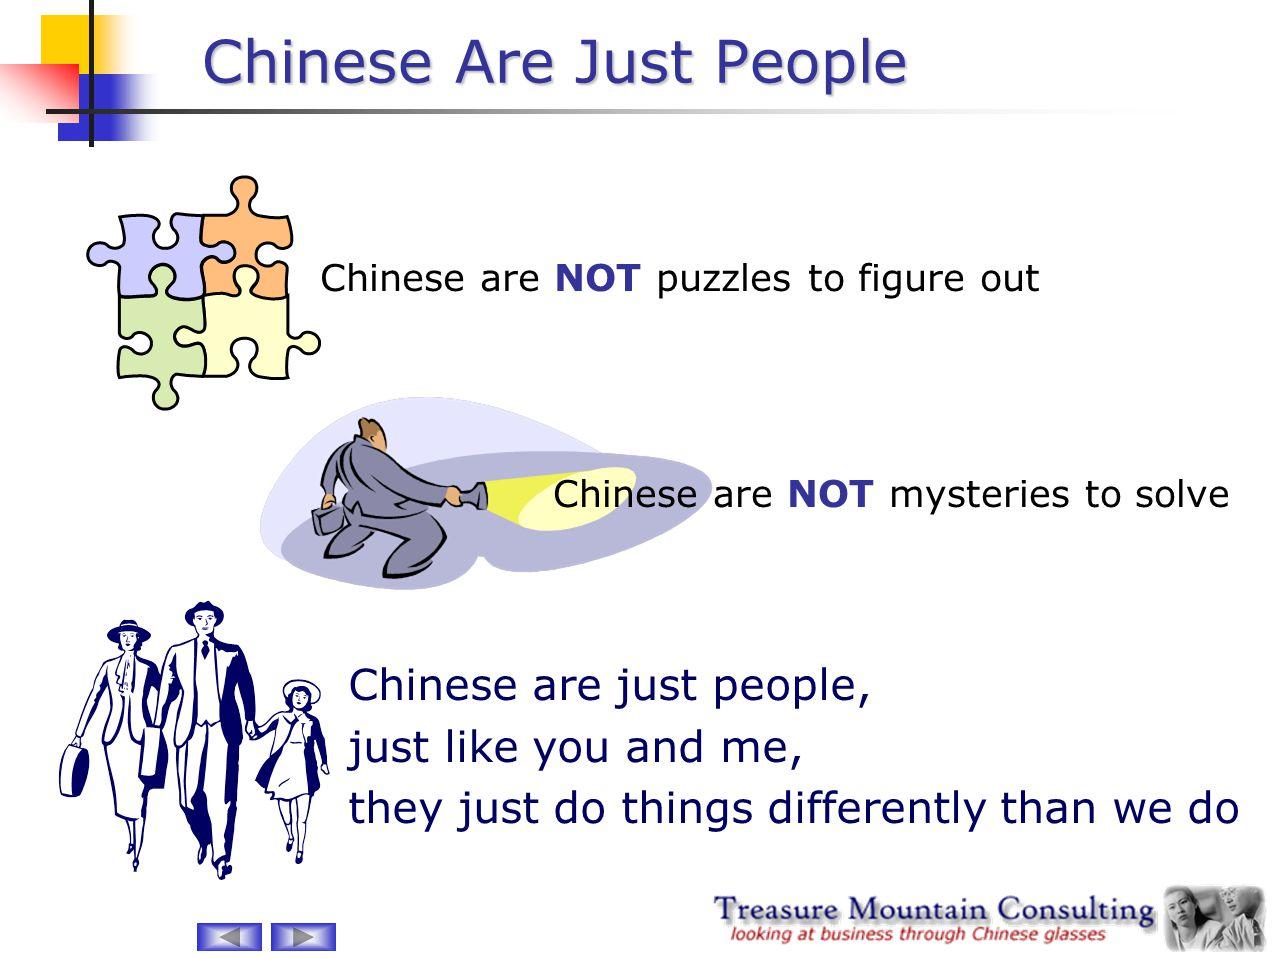 Chinese Are Just People